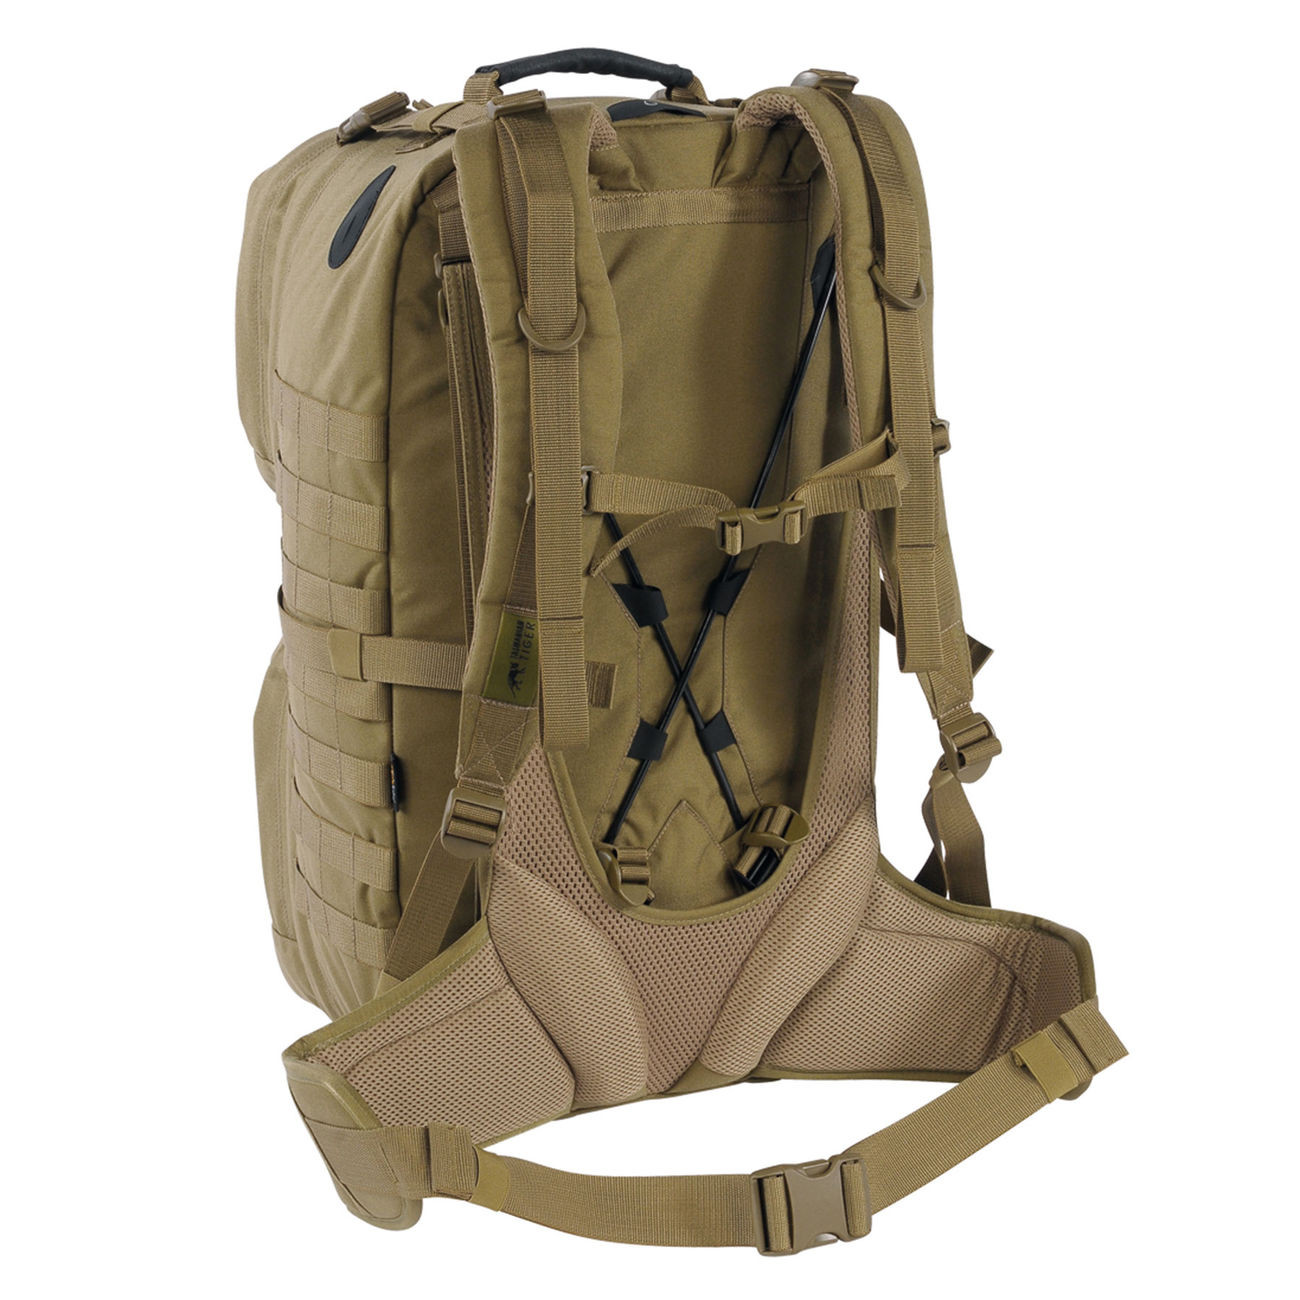 TT Rucksack Bug Out Pack khaki 1